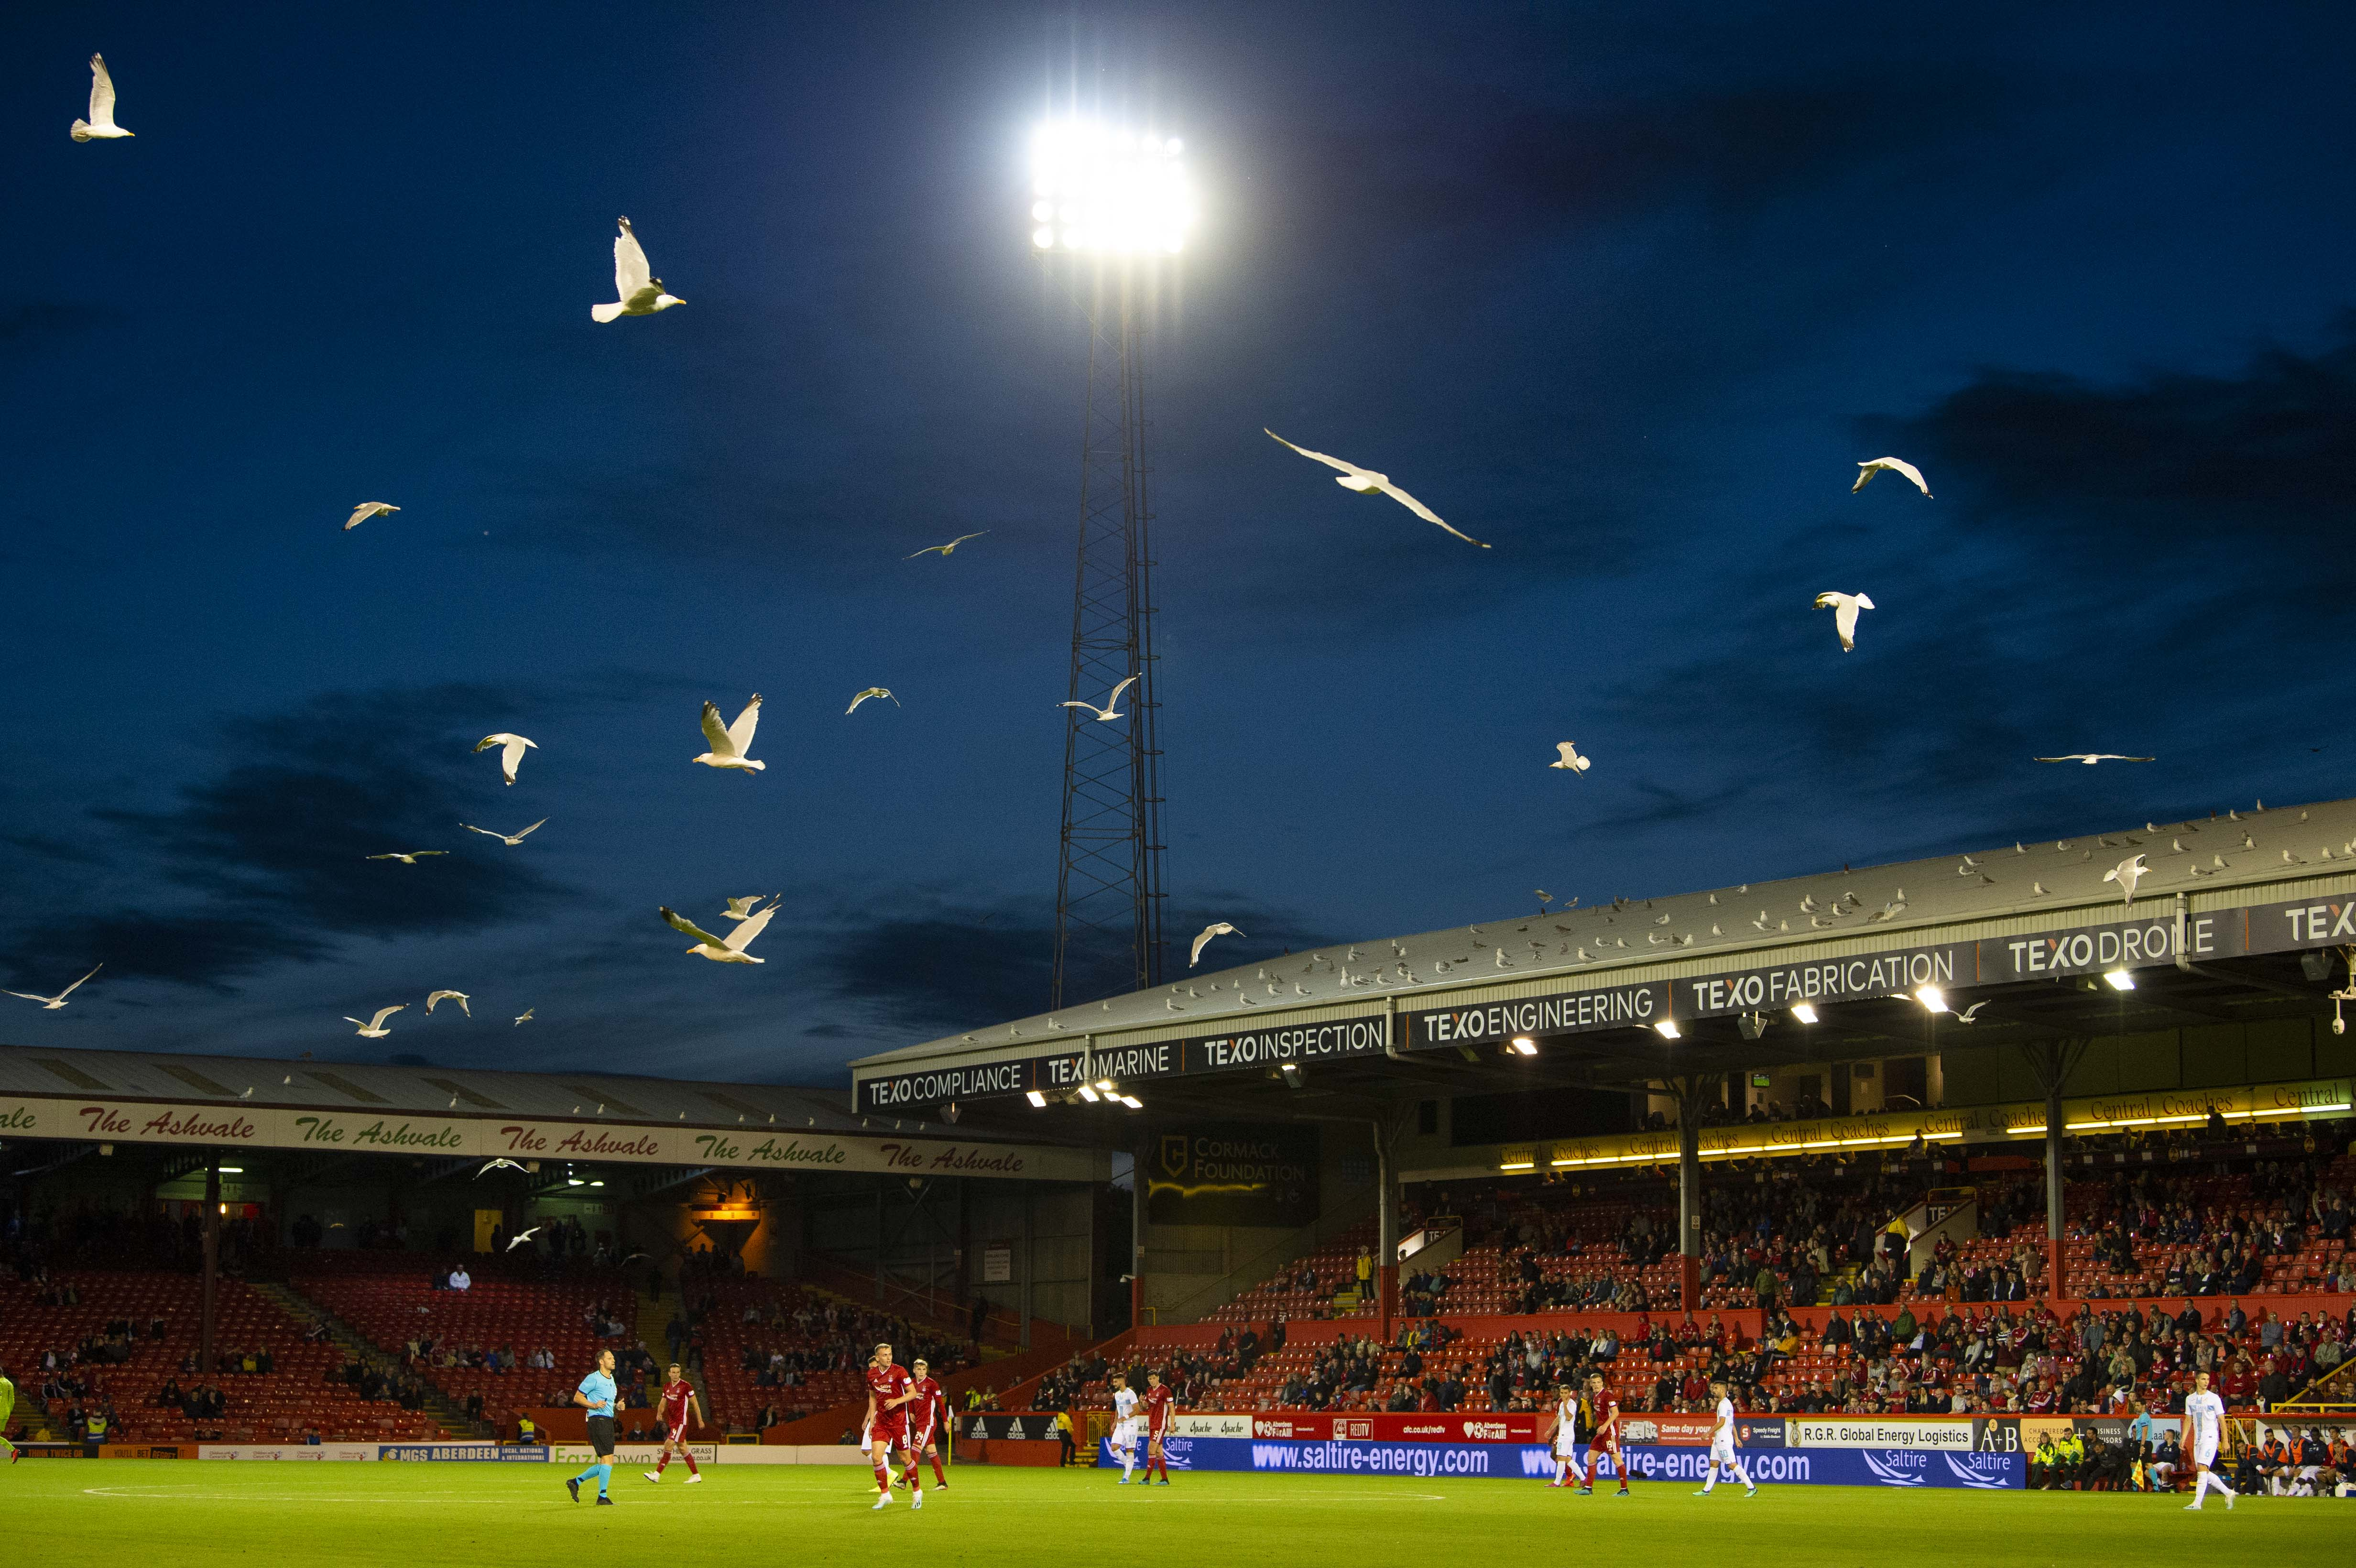 Gulls regularly descend onto the pitch during matches at Pittodrie.